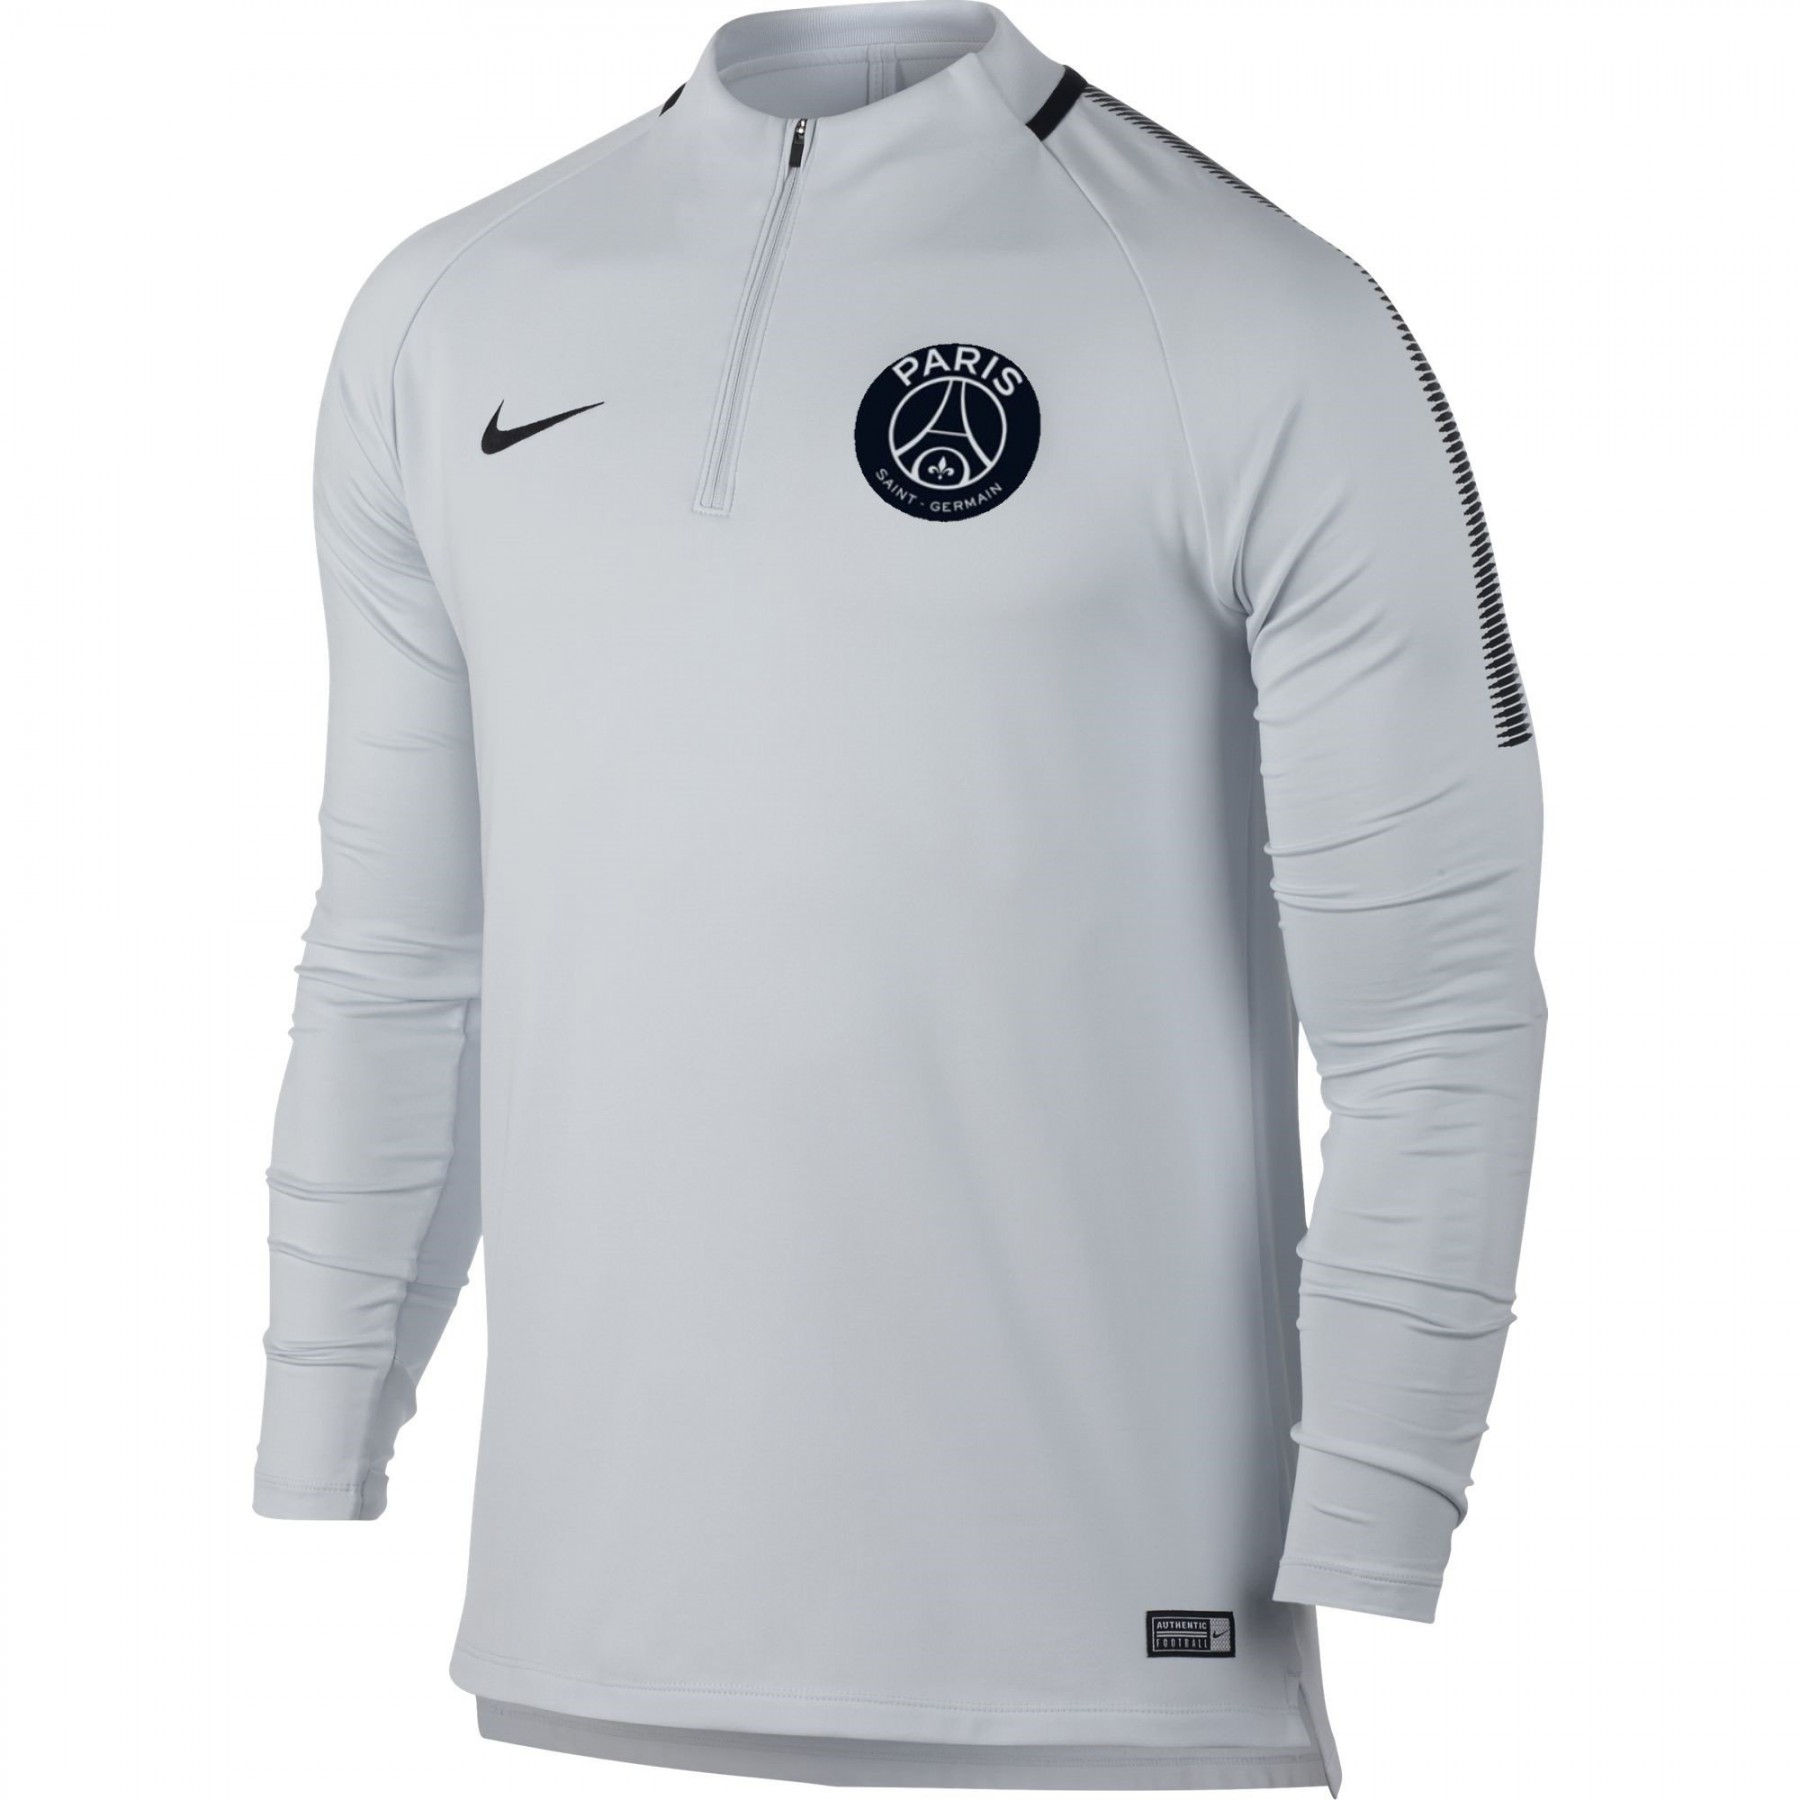 nike psg trg top blanc 2017 2018 psg club francais. Black Bedroom Furniture Sets. Home Design Ideas